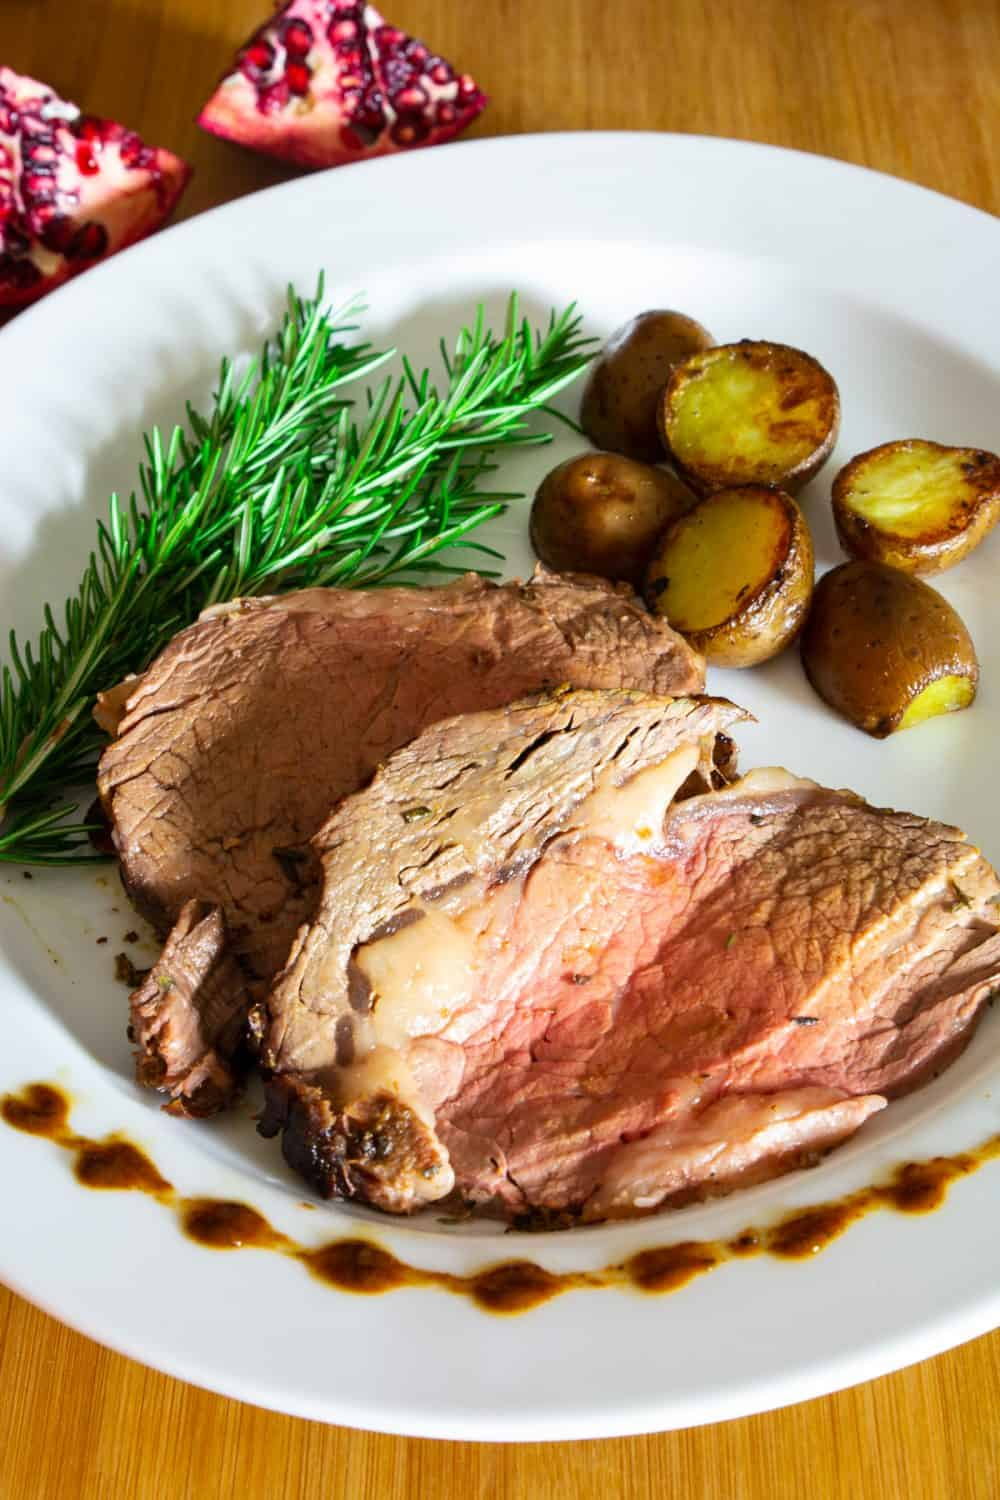 Slide of prime rib roast with potatoes and a spring of rosemary on a white plate, pomegranate slices in the background